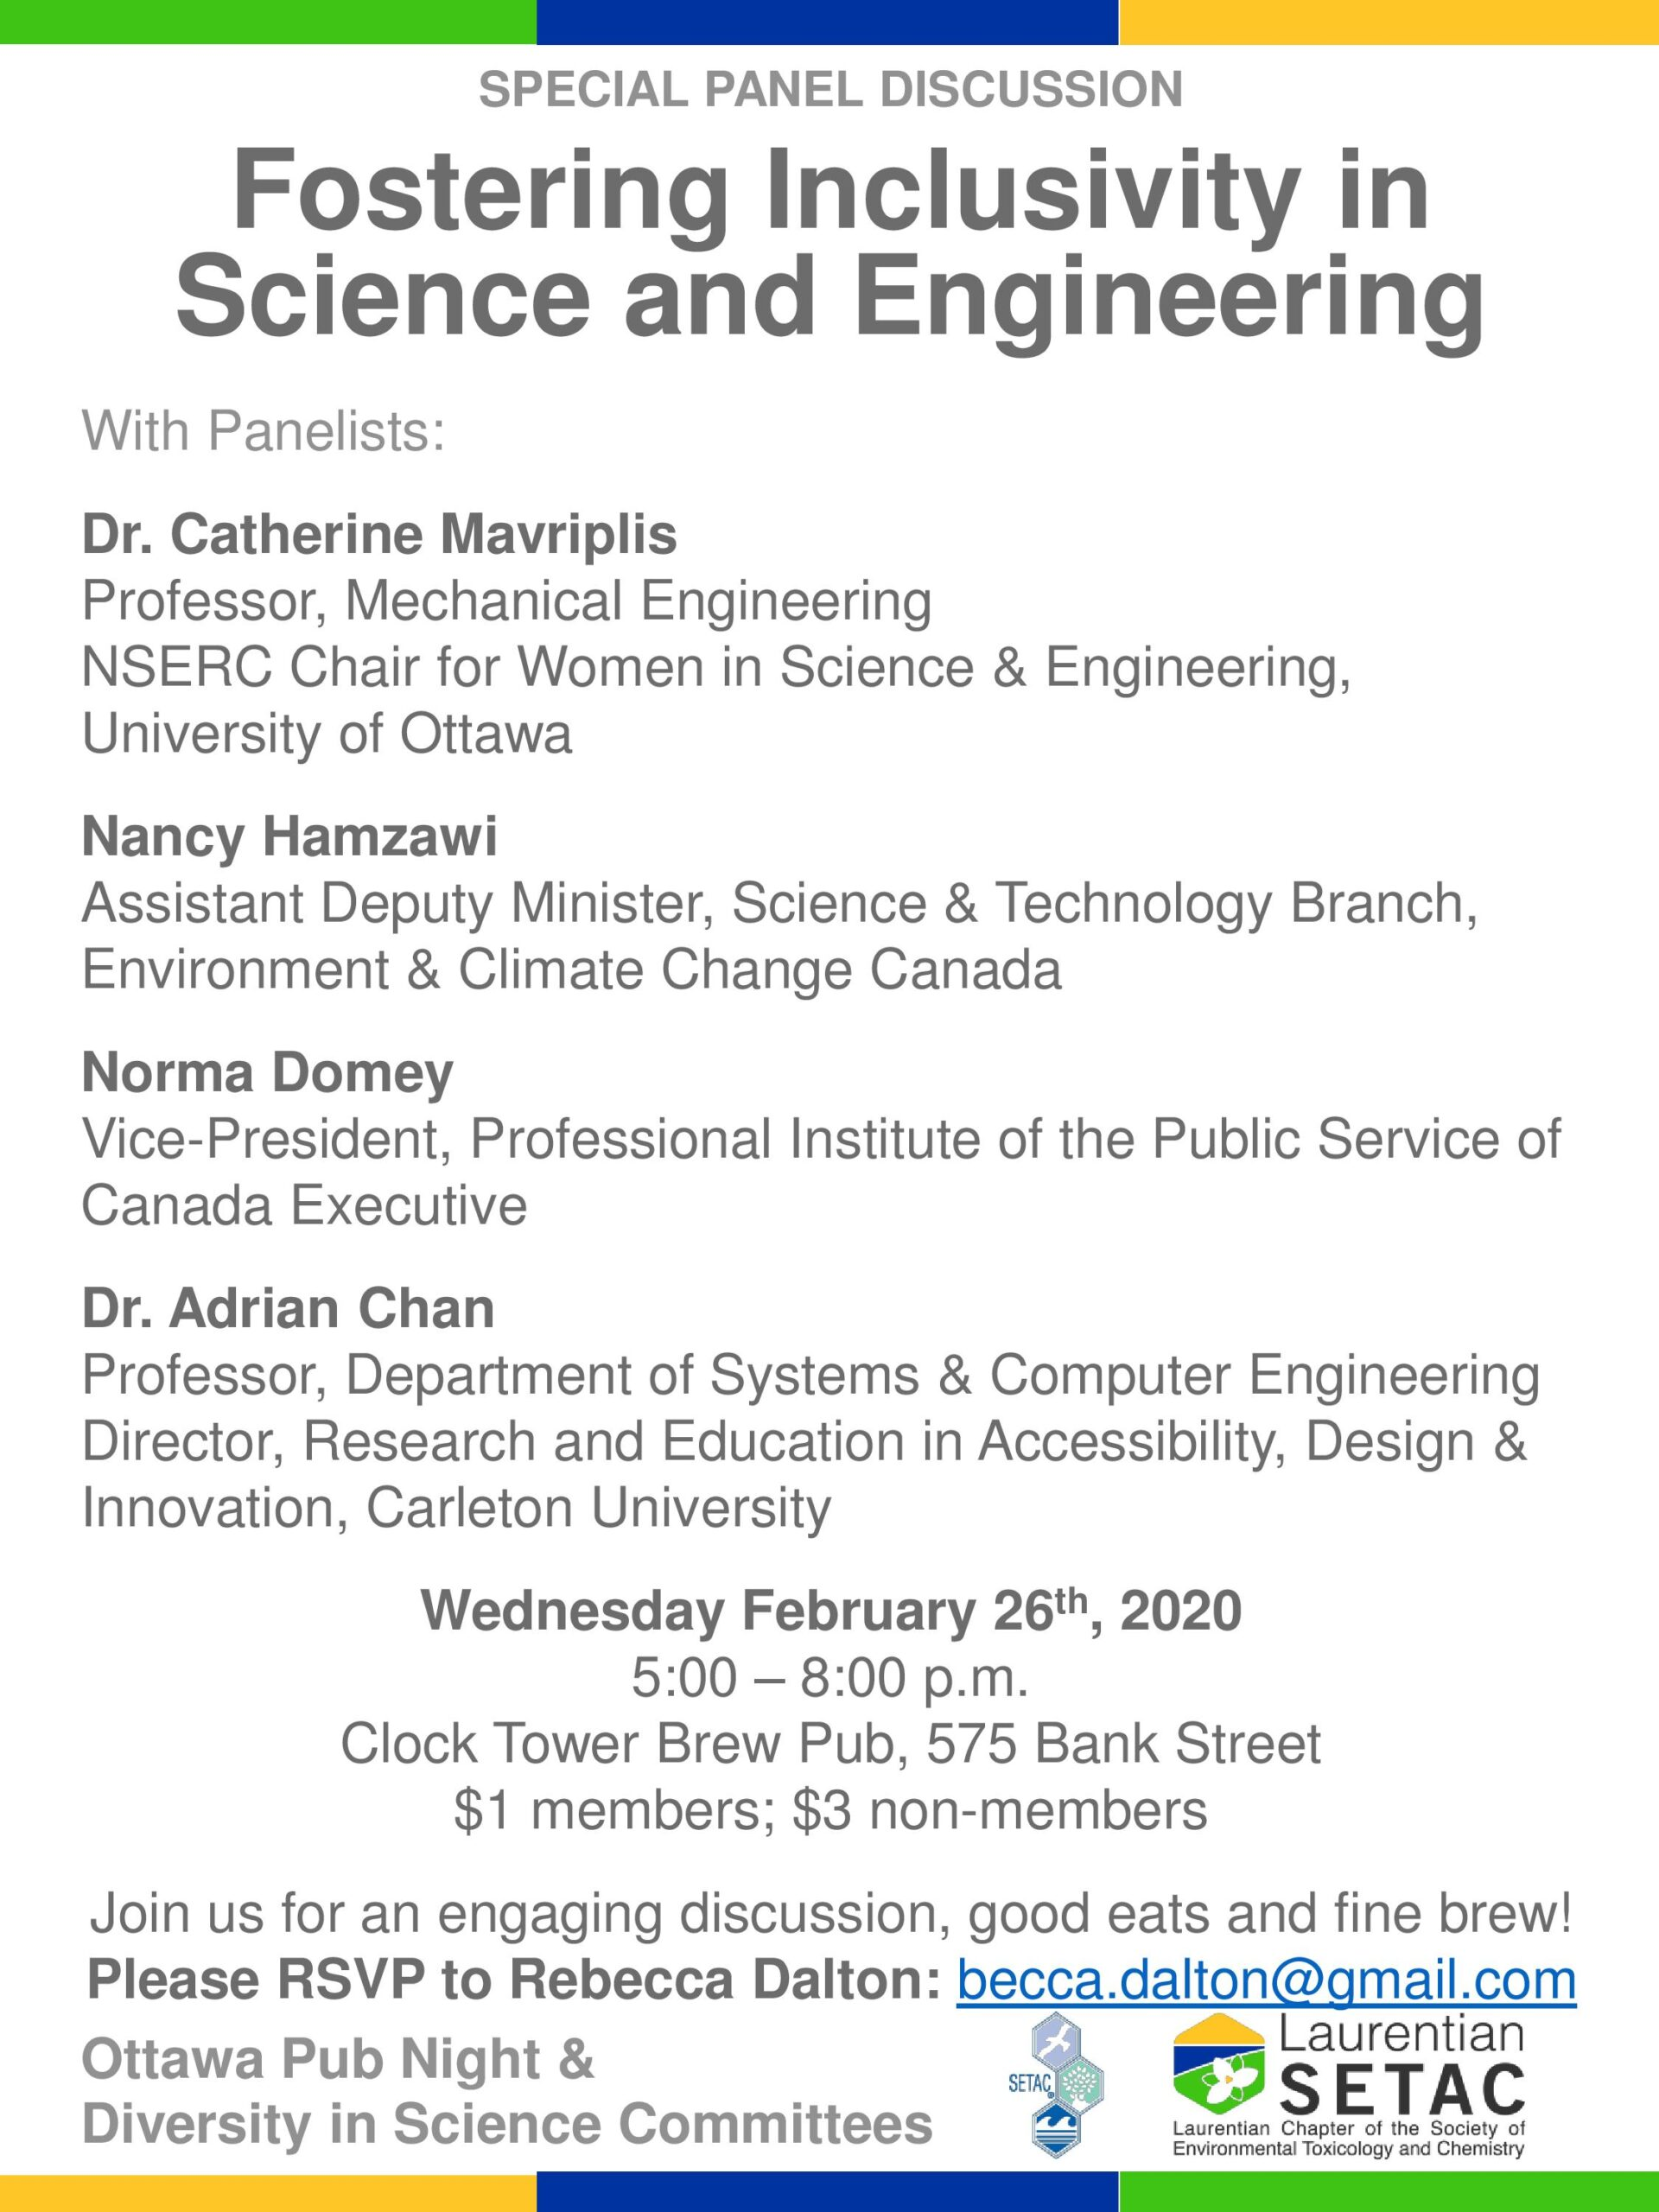 Fostering Inclusivity in Science and Engineering – Feb 26 – Ottawa @ Tap Room, Clock Tower Brew Pub (regrettably accessible by stairs only)